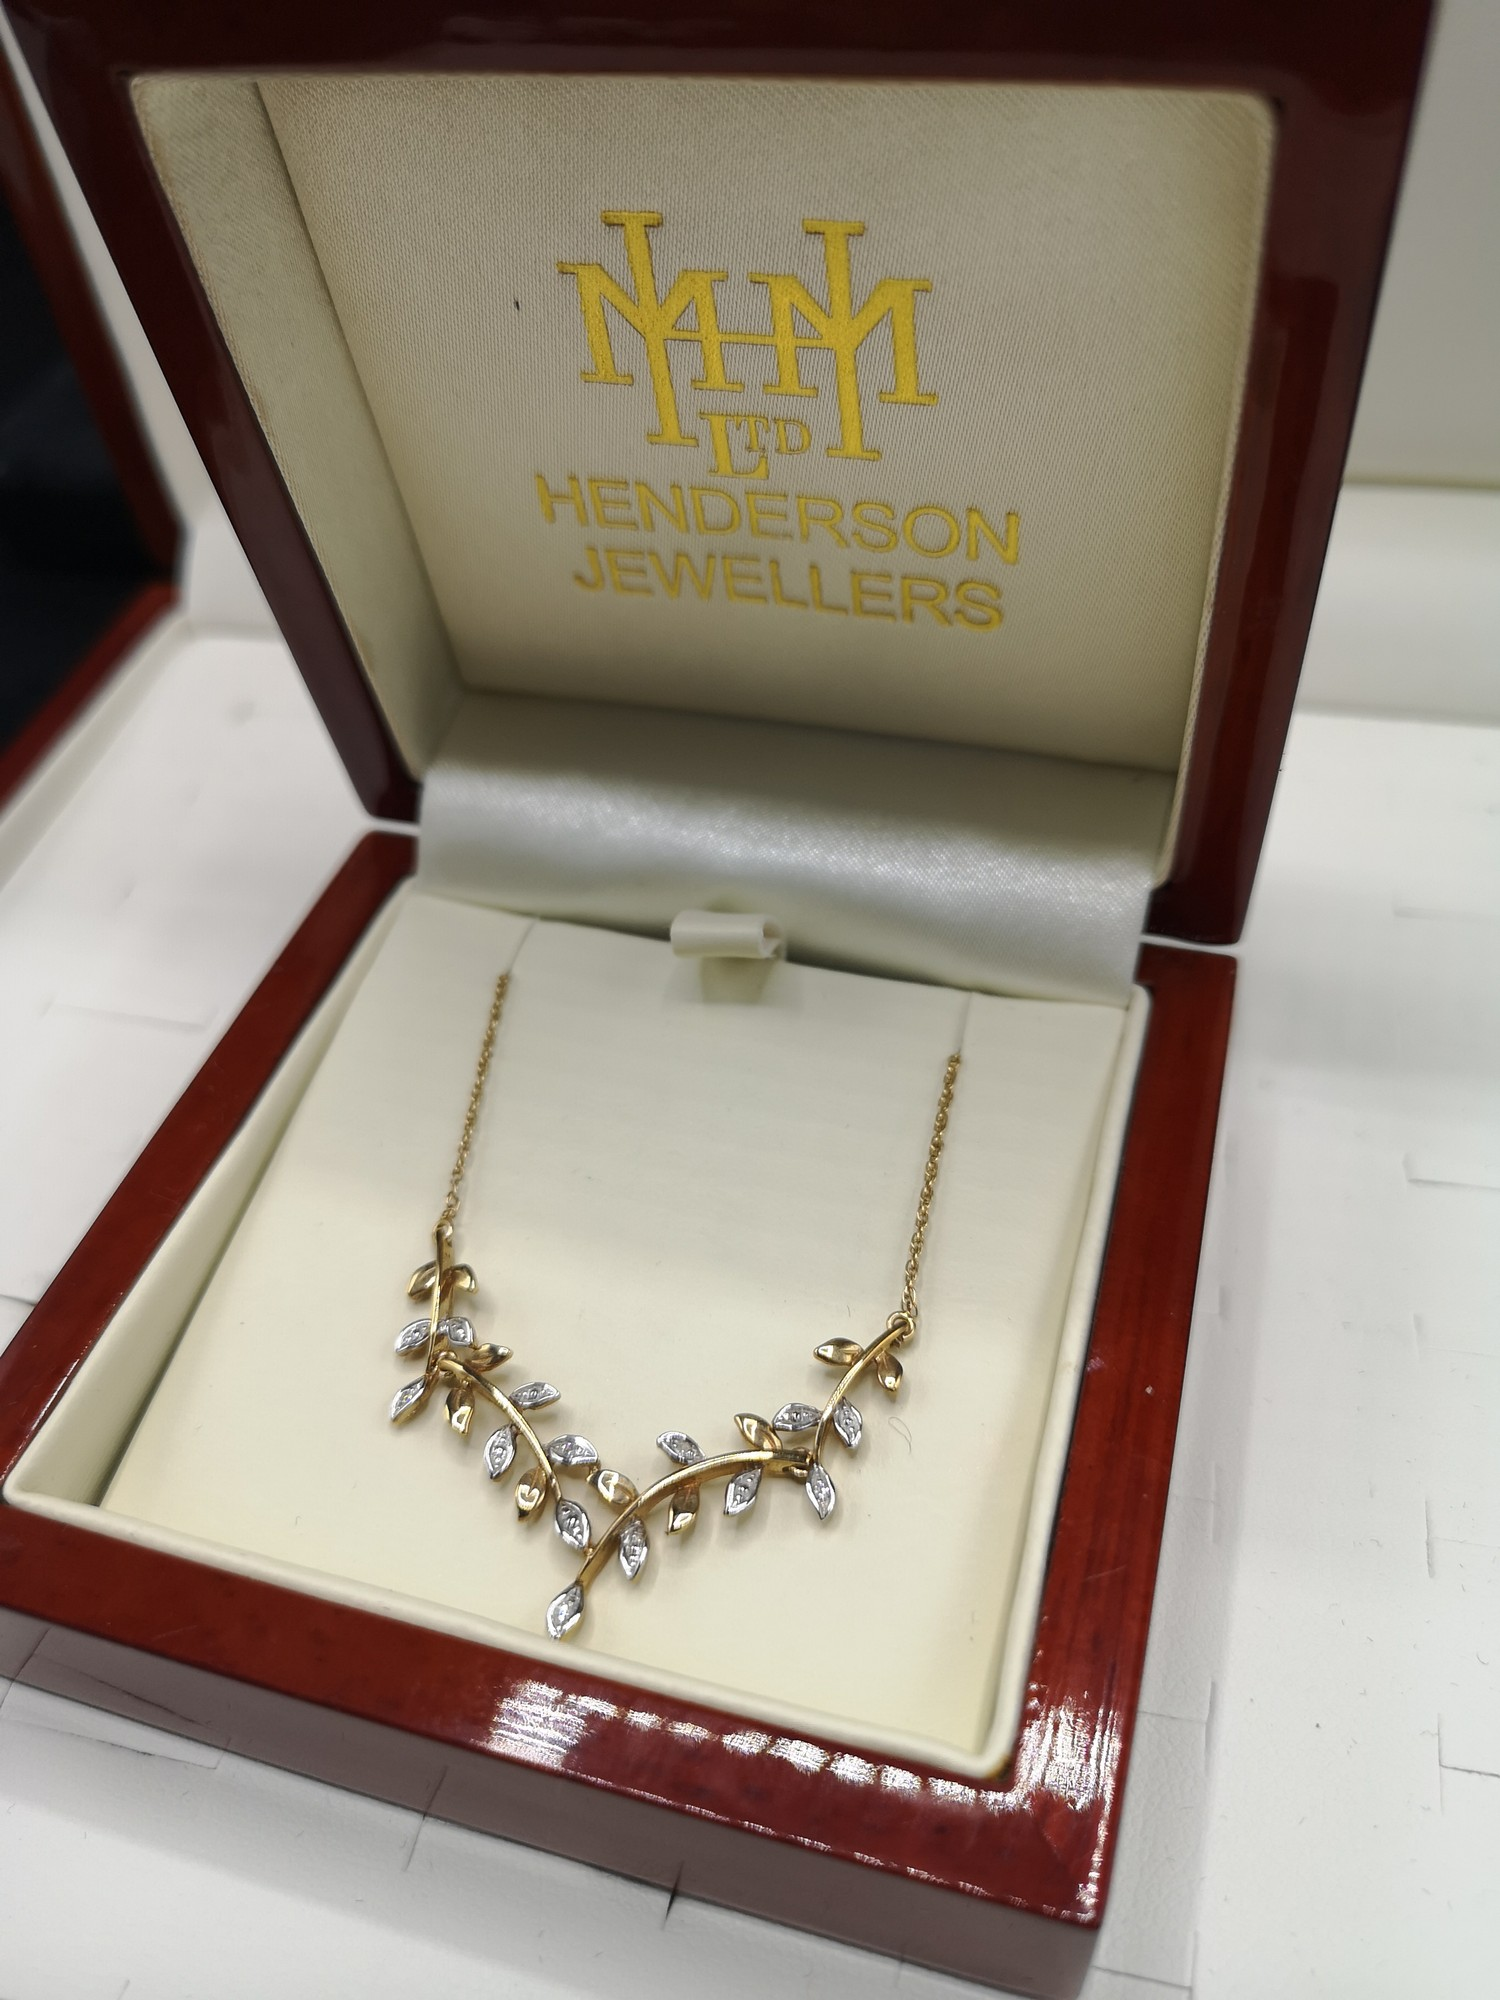 9ct gold necklace set with diamond chip . Tested as diamond s.